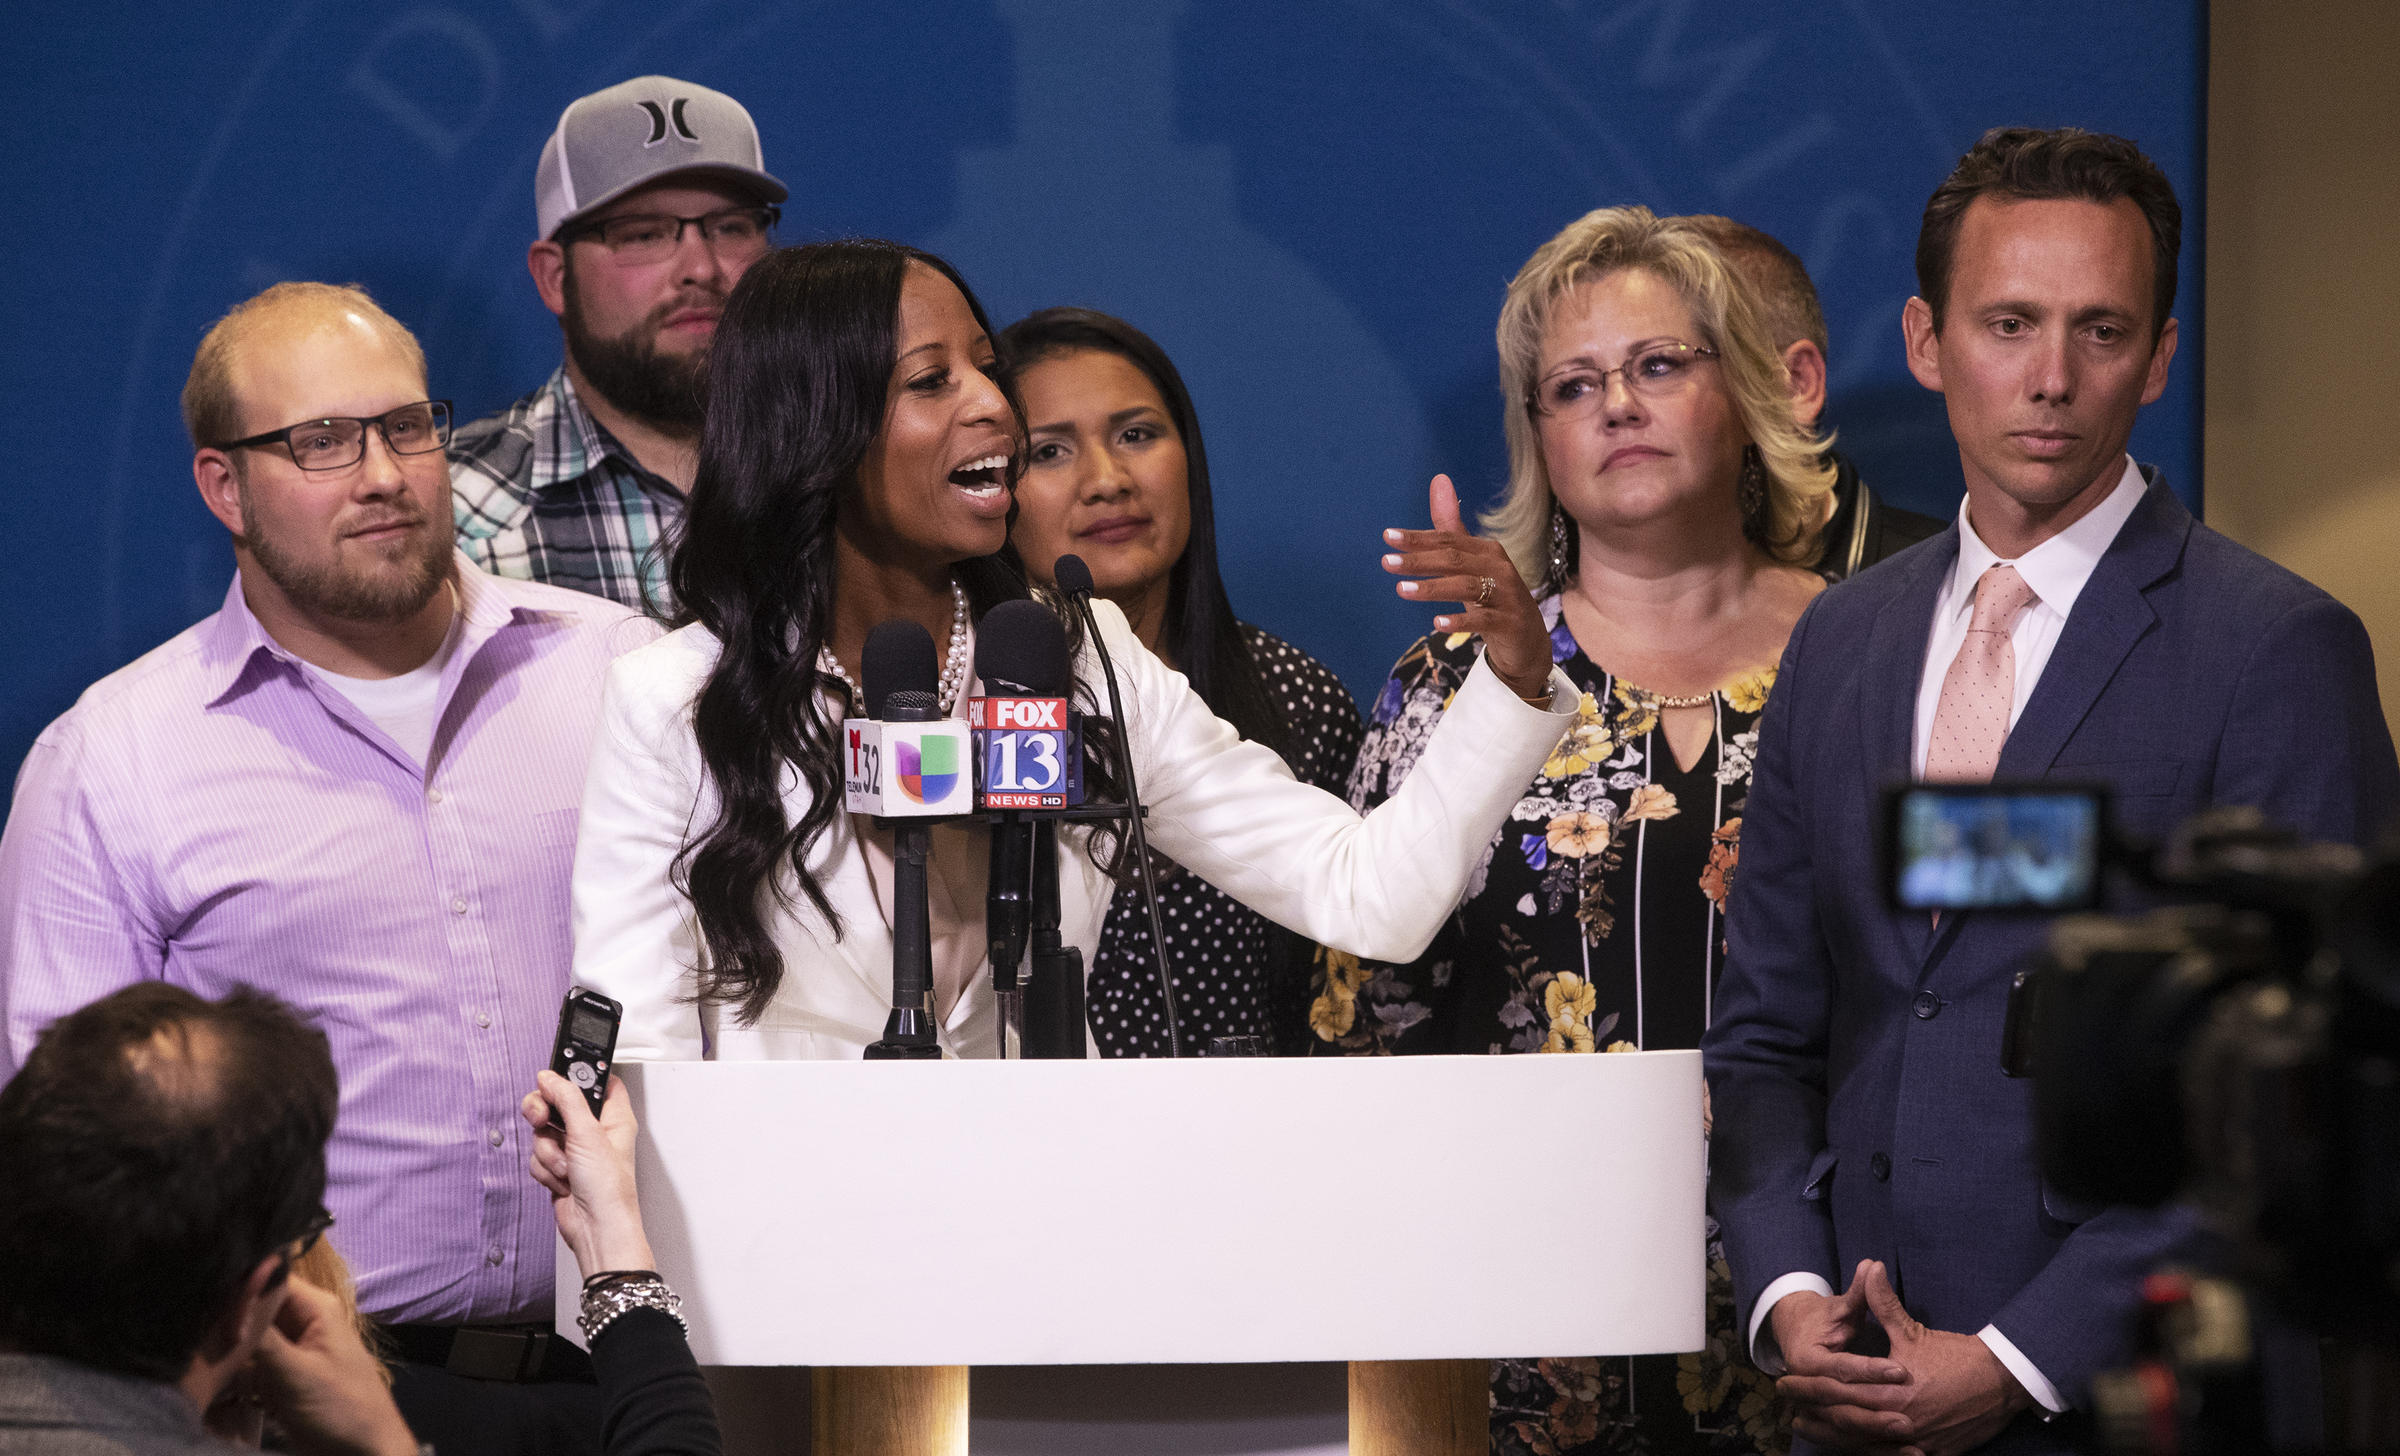 Rep. Mia Love stands with Josh Holt and his family after the debate with Ben Mc Adams during the 2018 midterm election. Pool